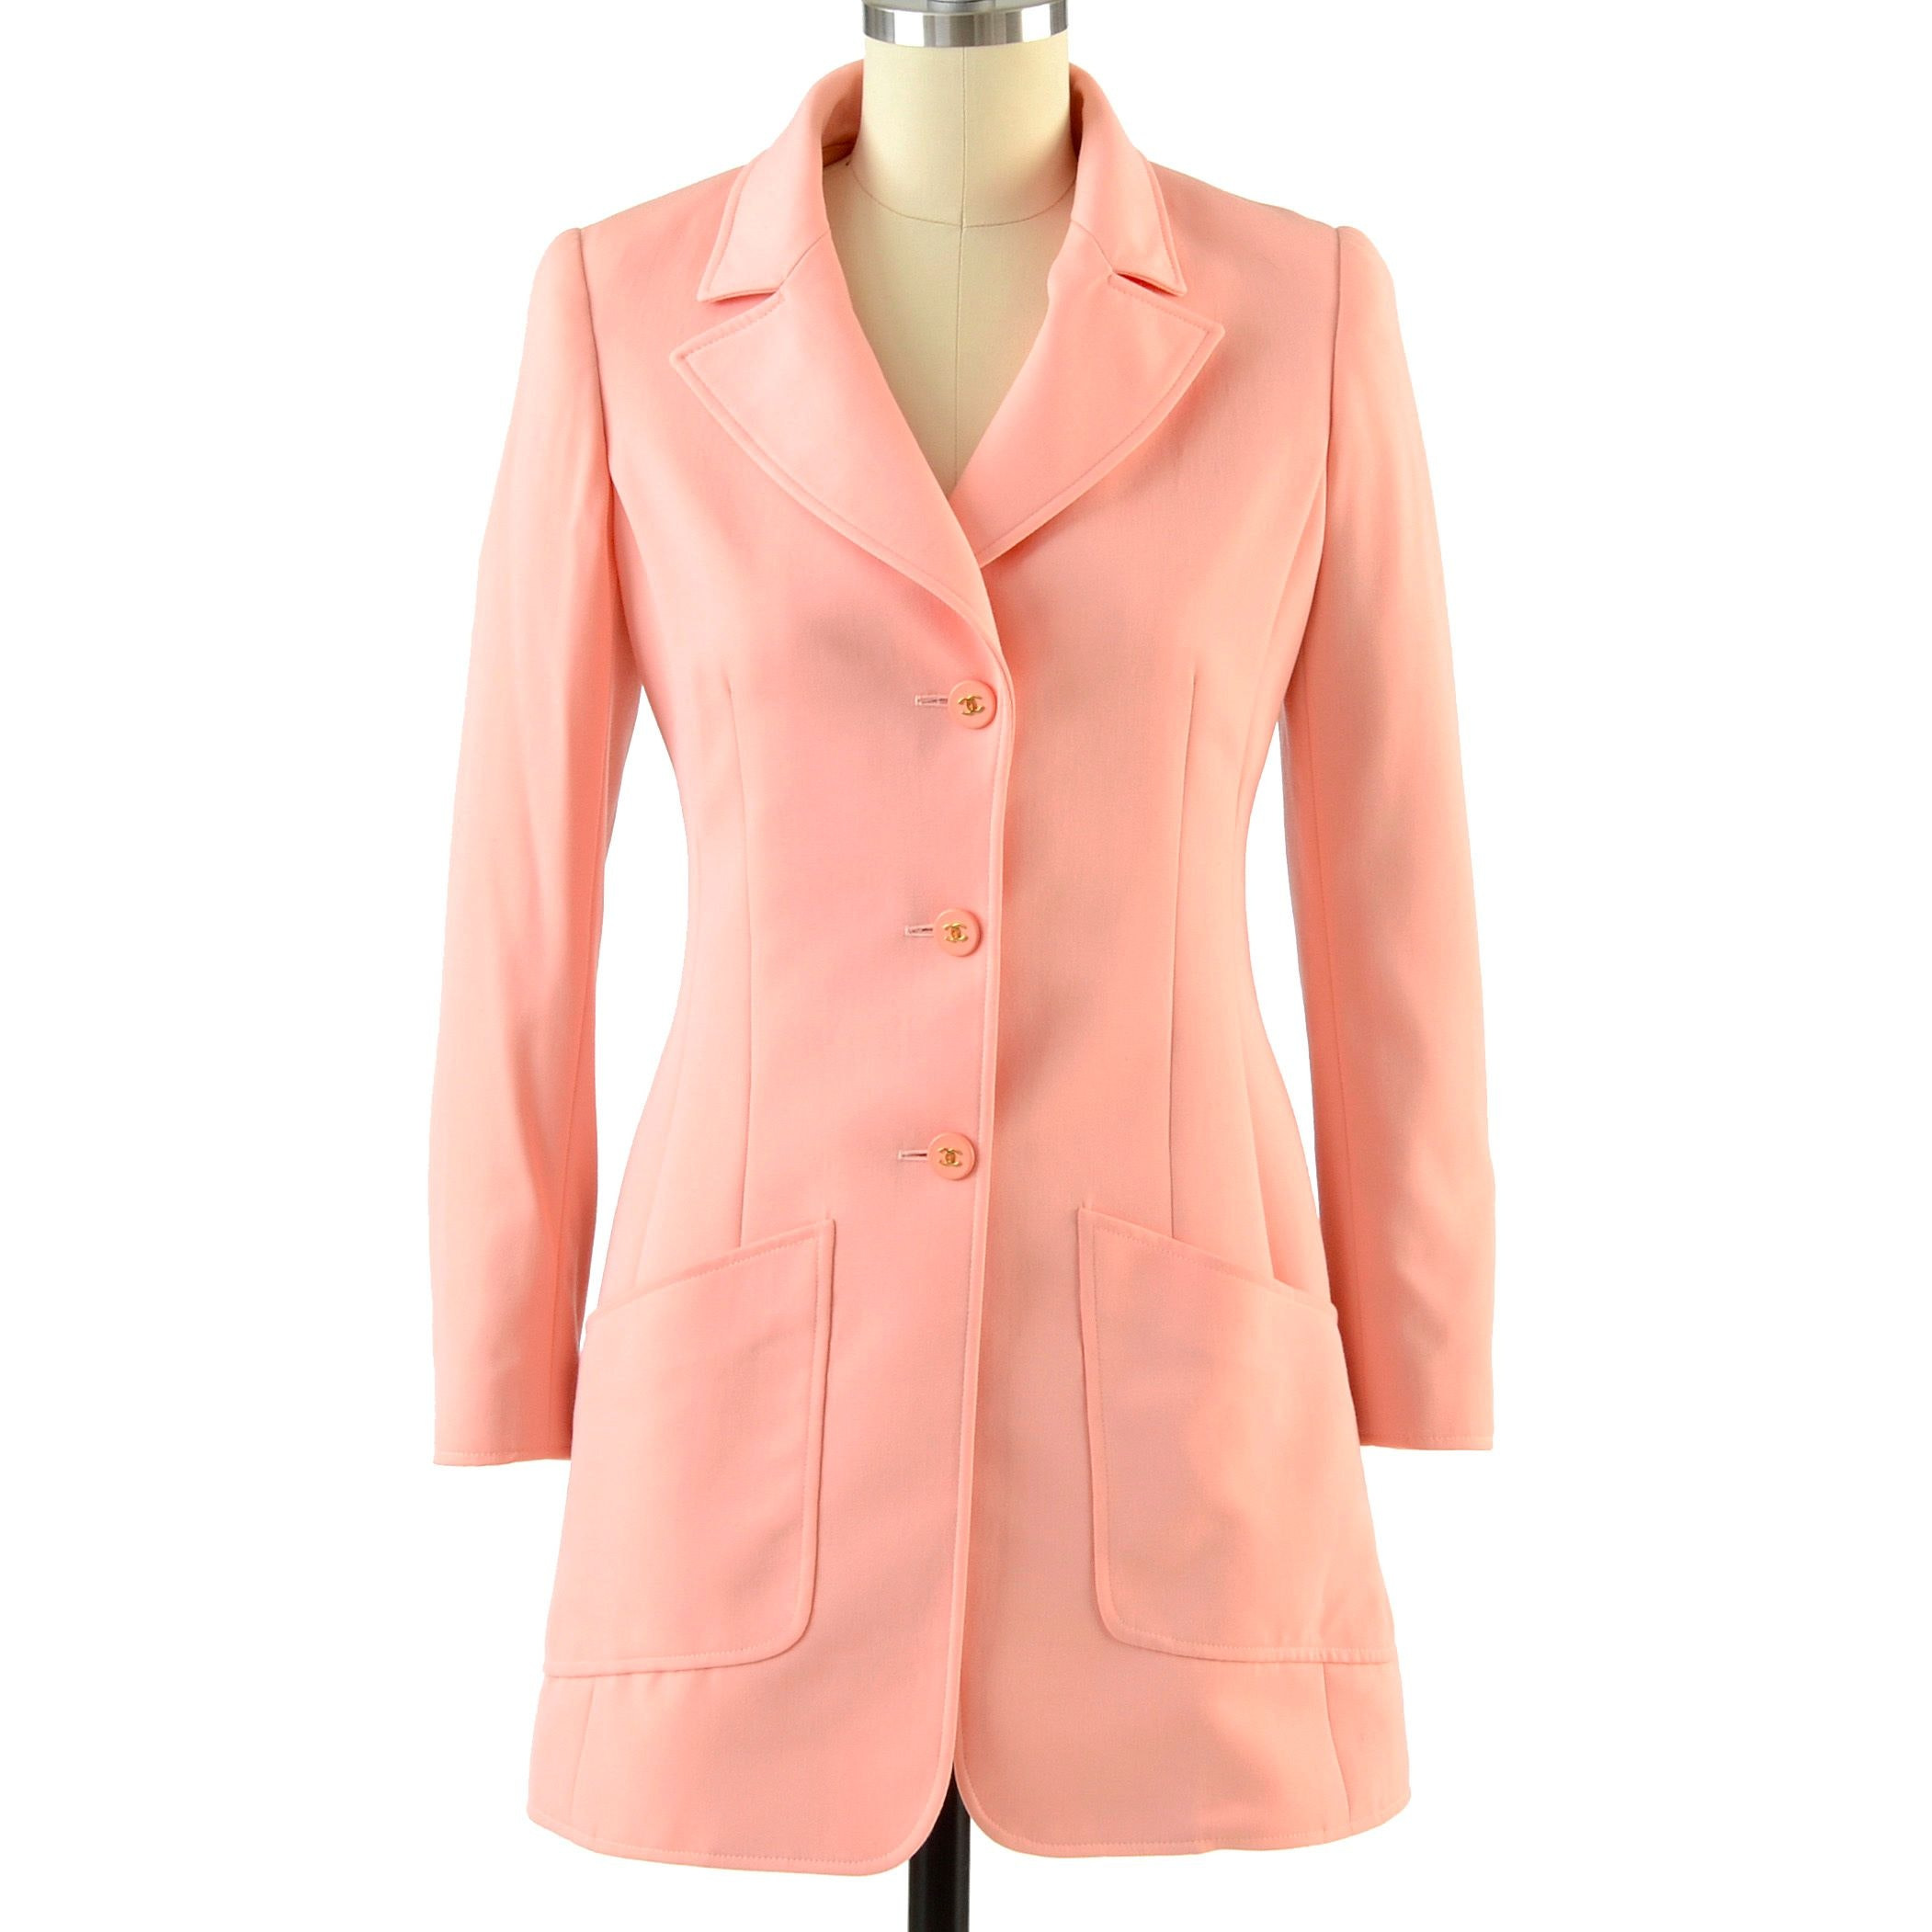 Chanel Boutique Gabardine Wool and Silk Suit in Coral